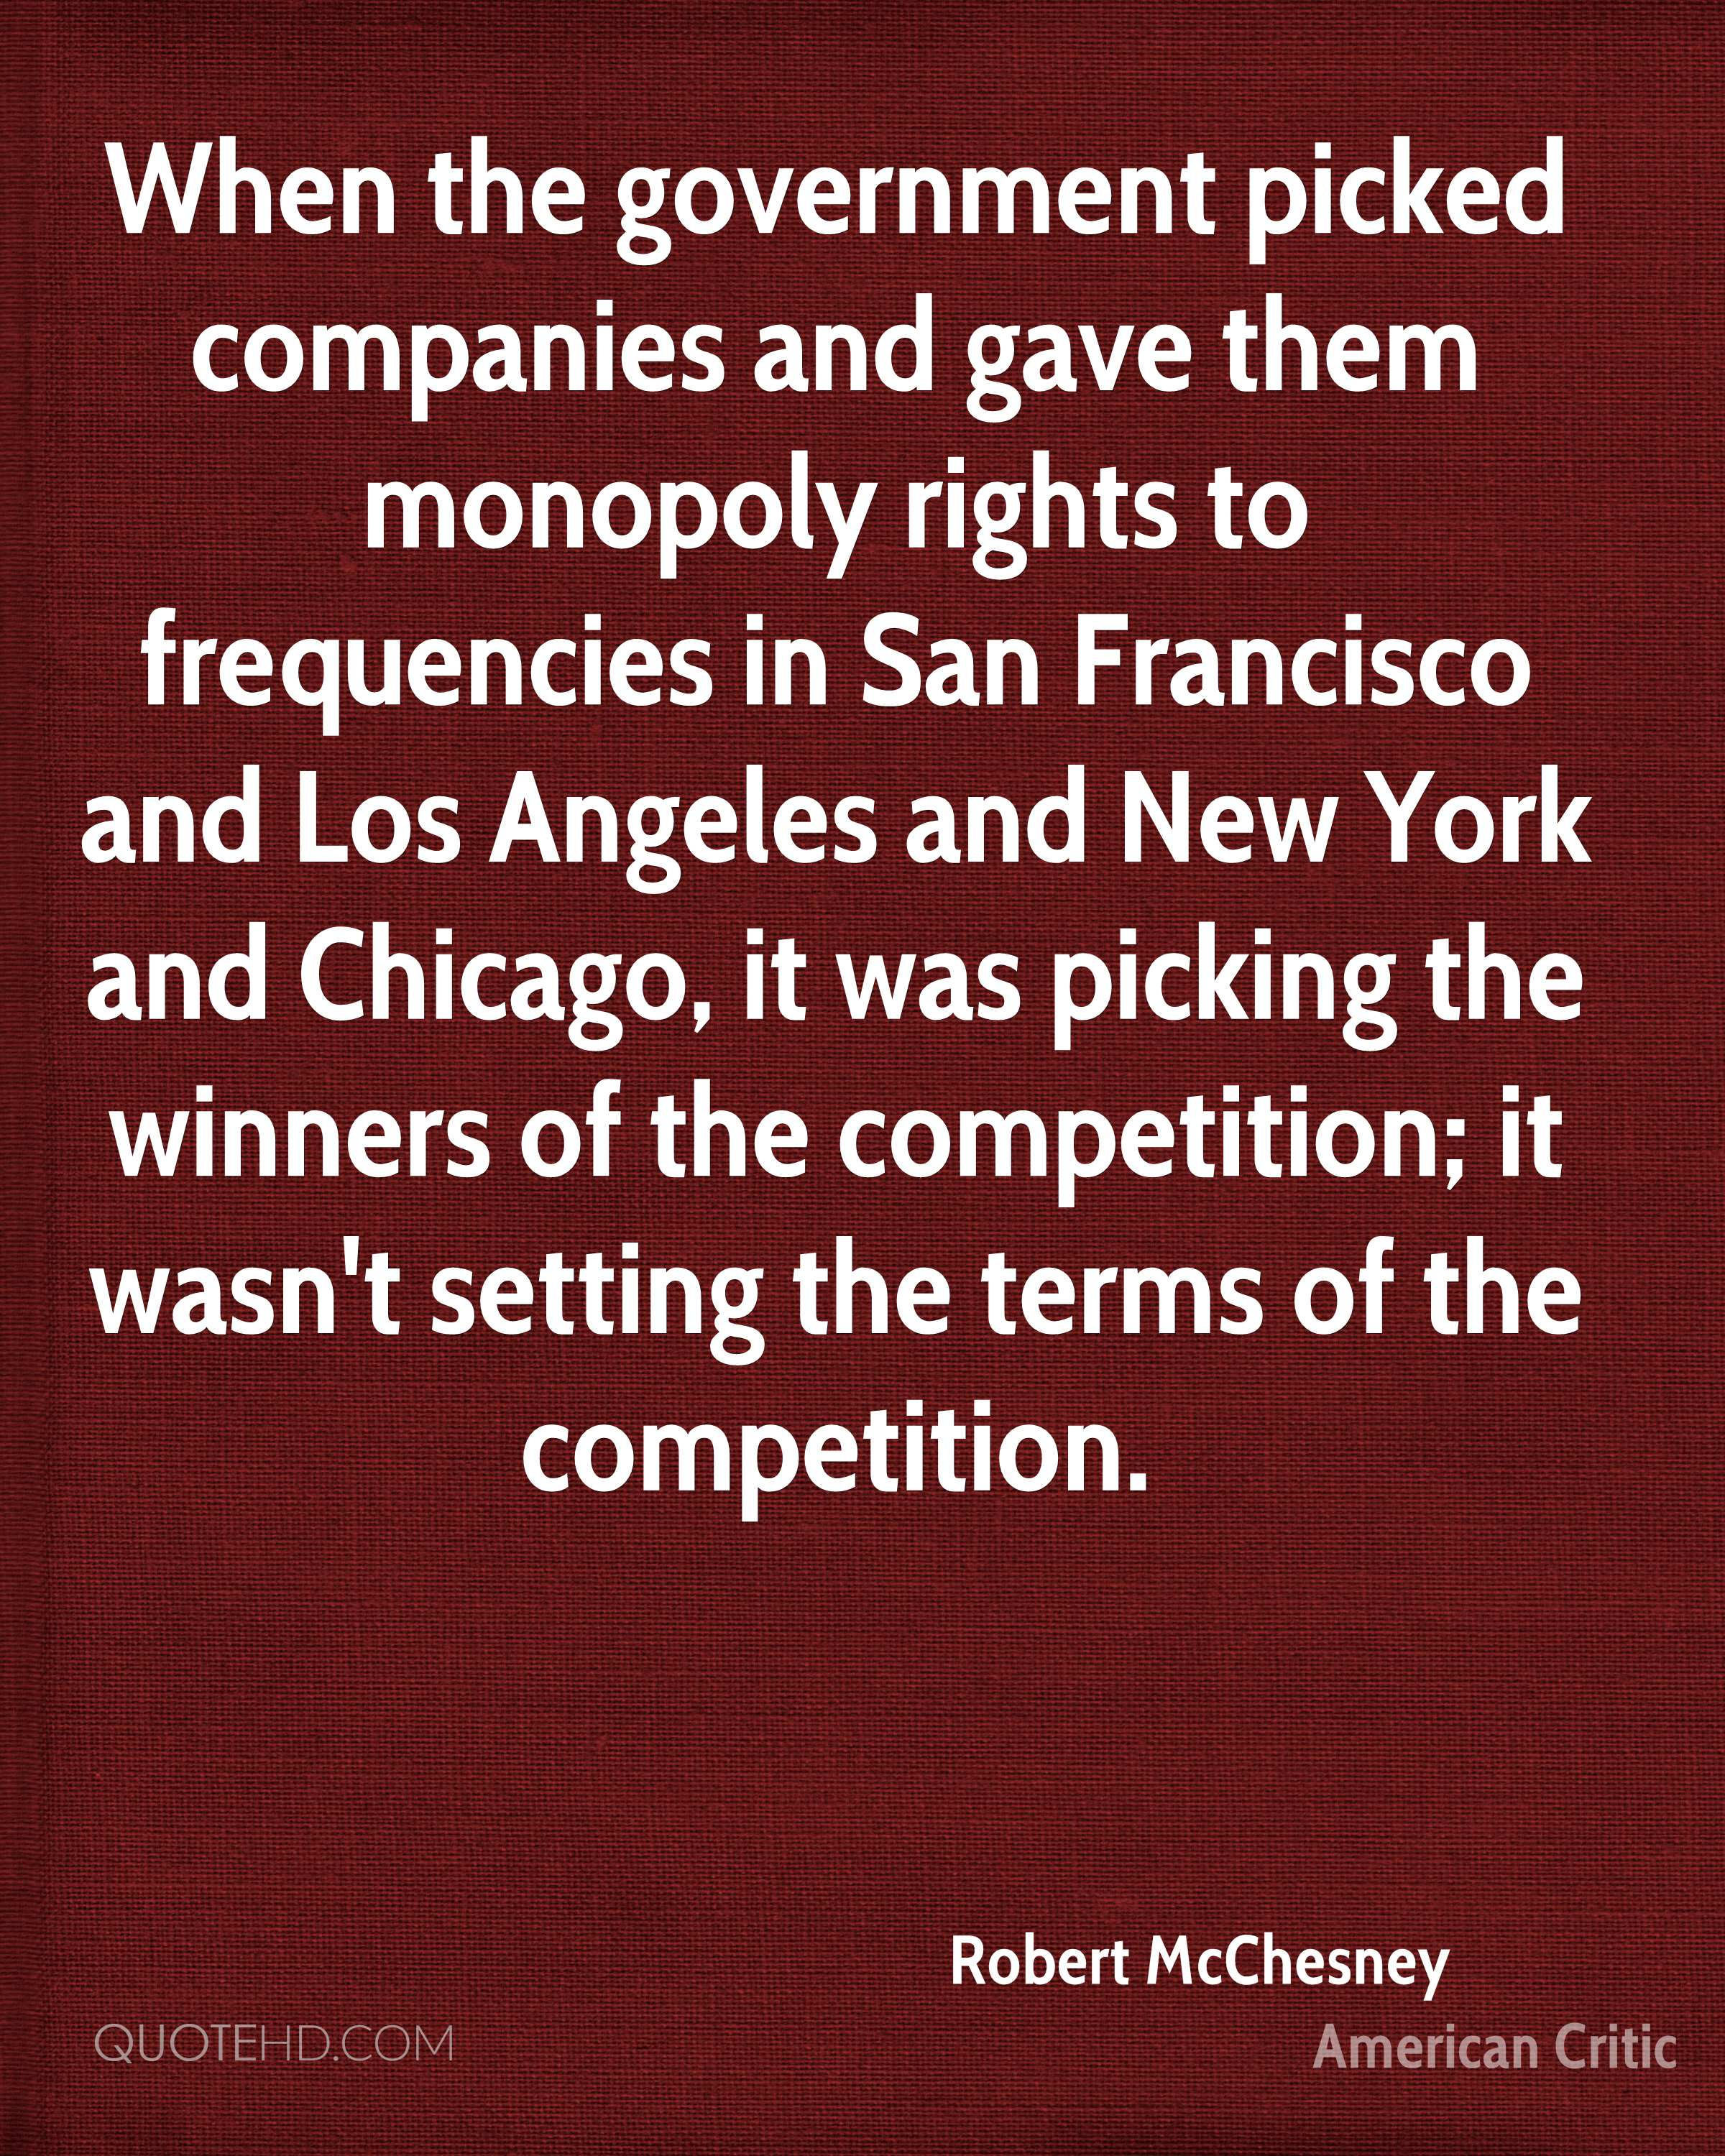 When the government picked companies and gave them monopoly rights to frequencies in San Francisco and Los Angeles and New York and Chicago, it was picking the winners of the competition; it wasn't setting the terms of the competition.